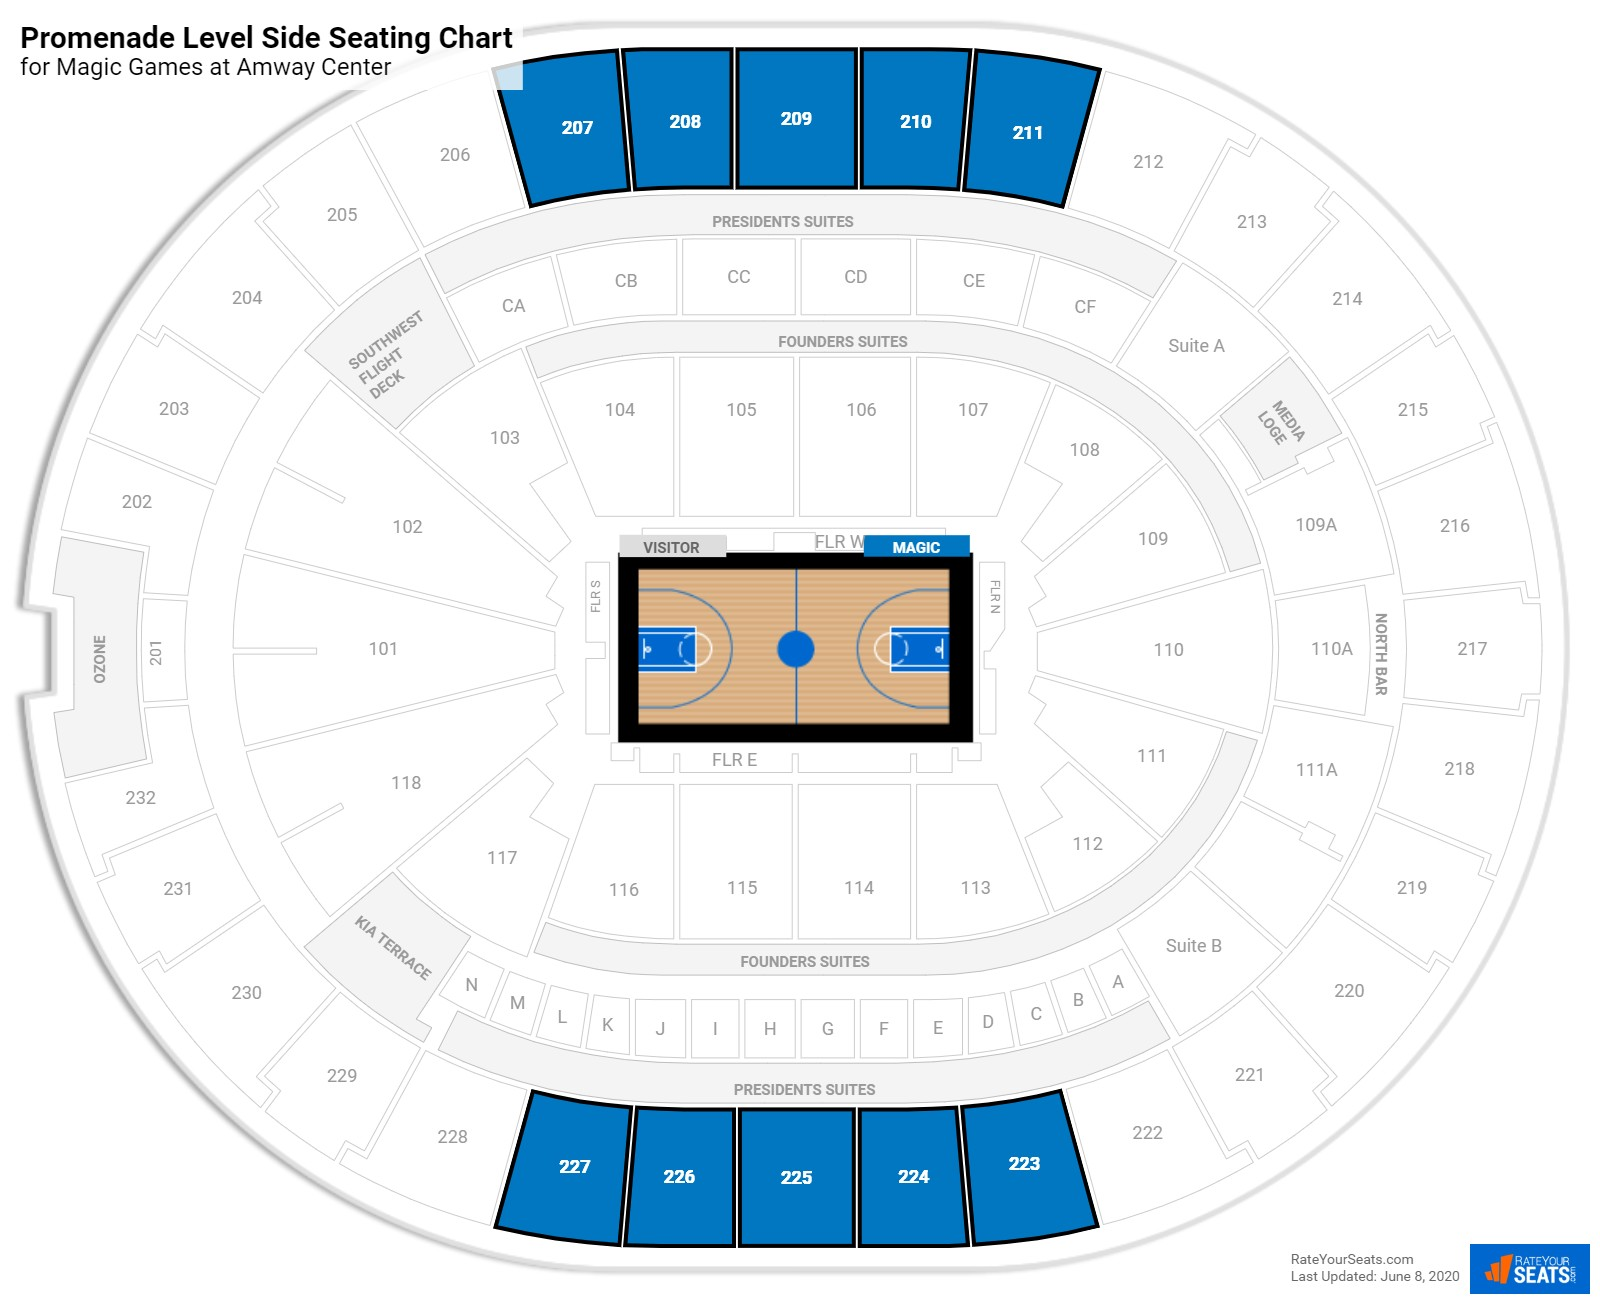 Amway Center Promenade Level Center seating chart